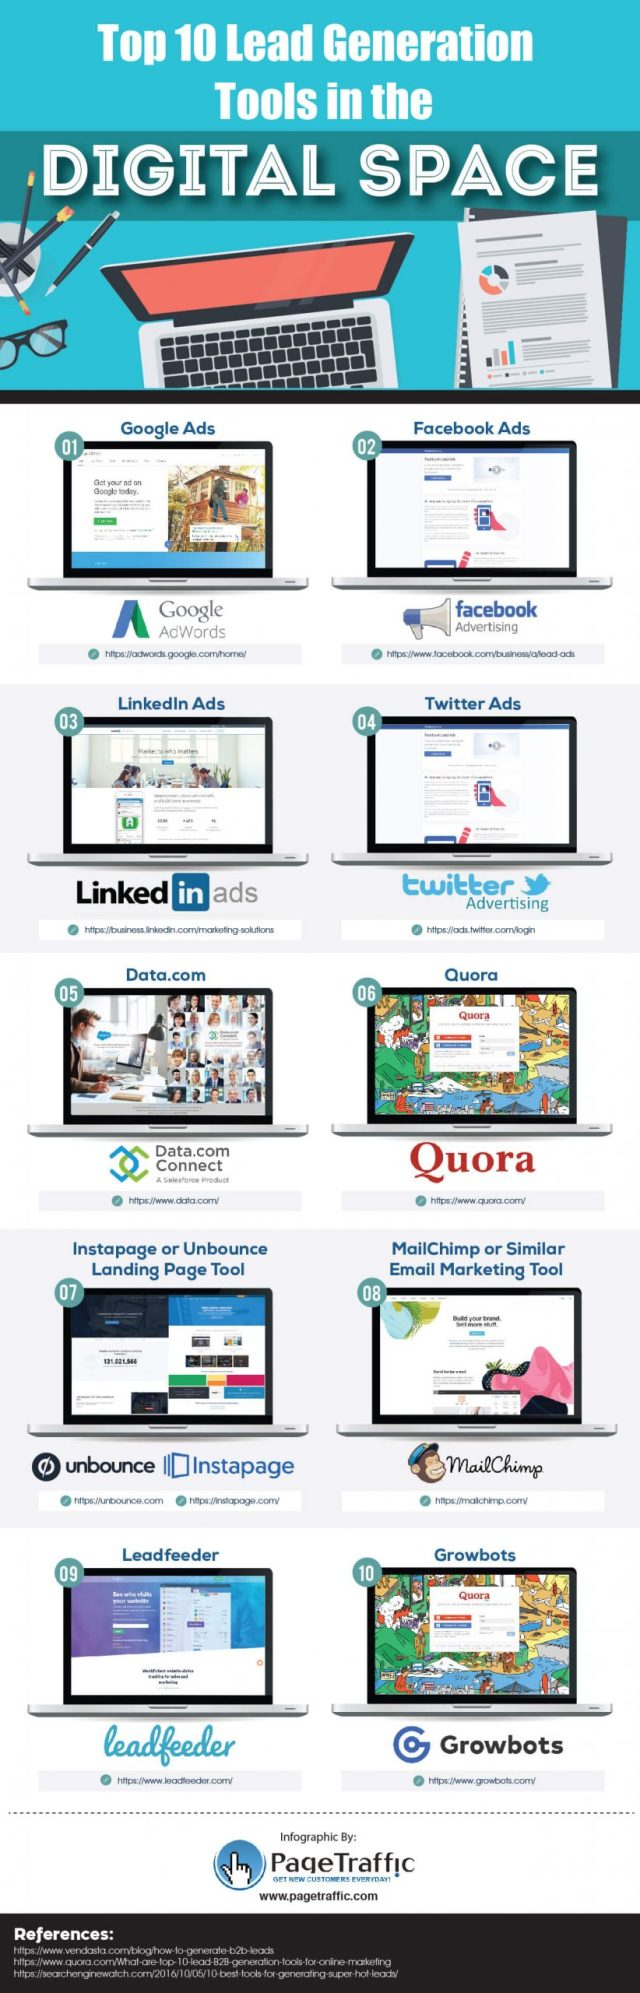 Lead Gen Tools Infographic compressed